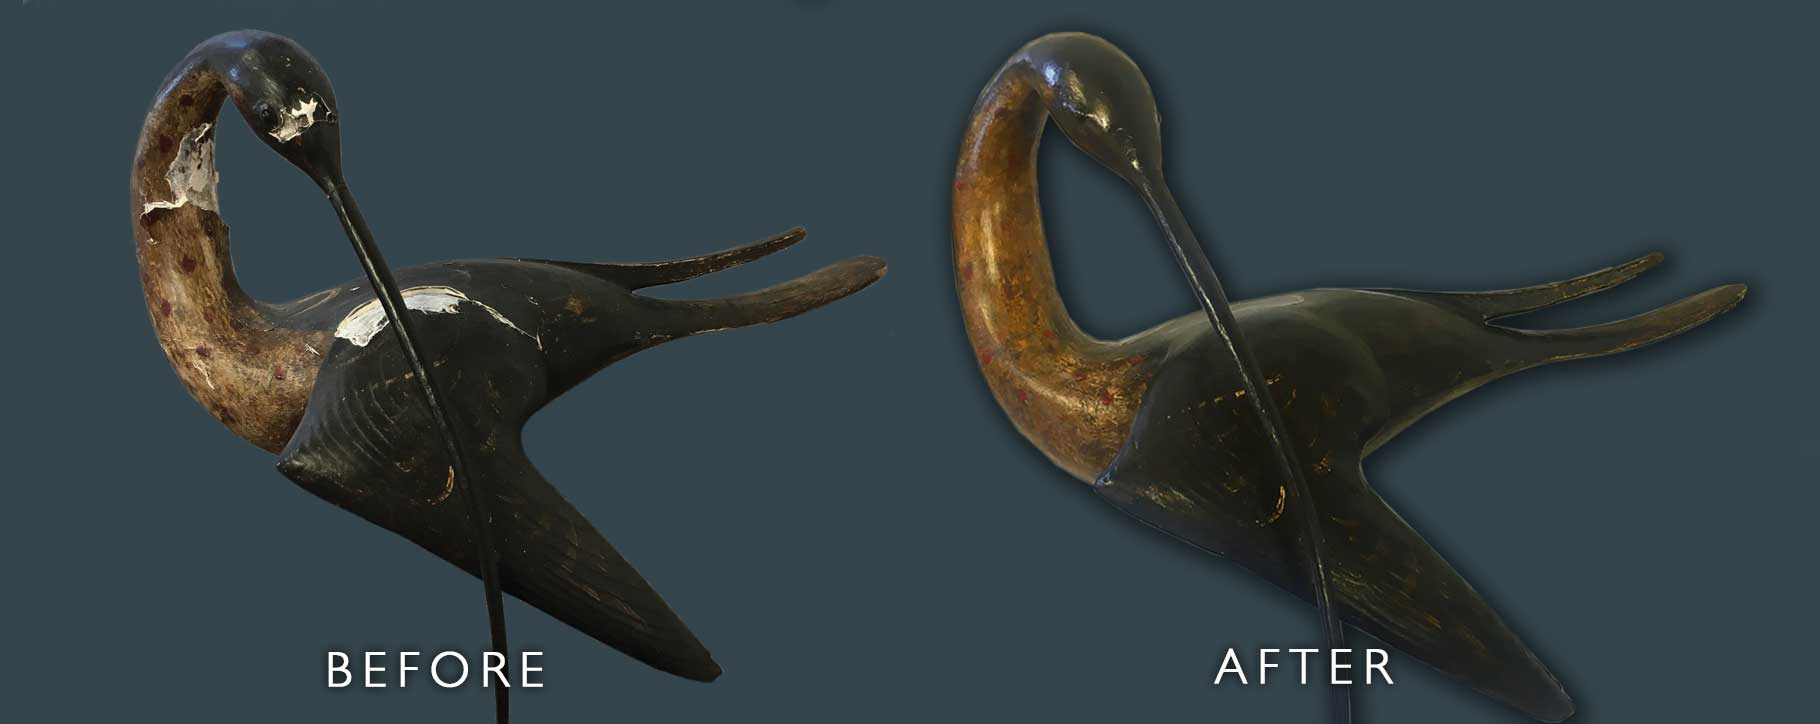 Before and after of restored ceramic bird